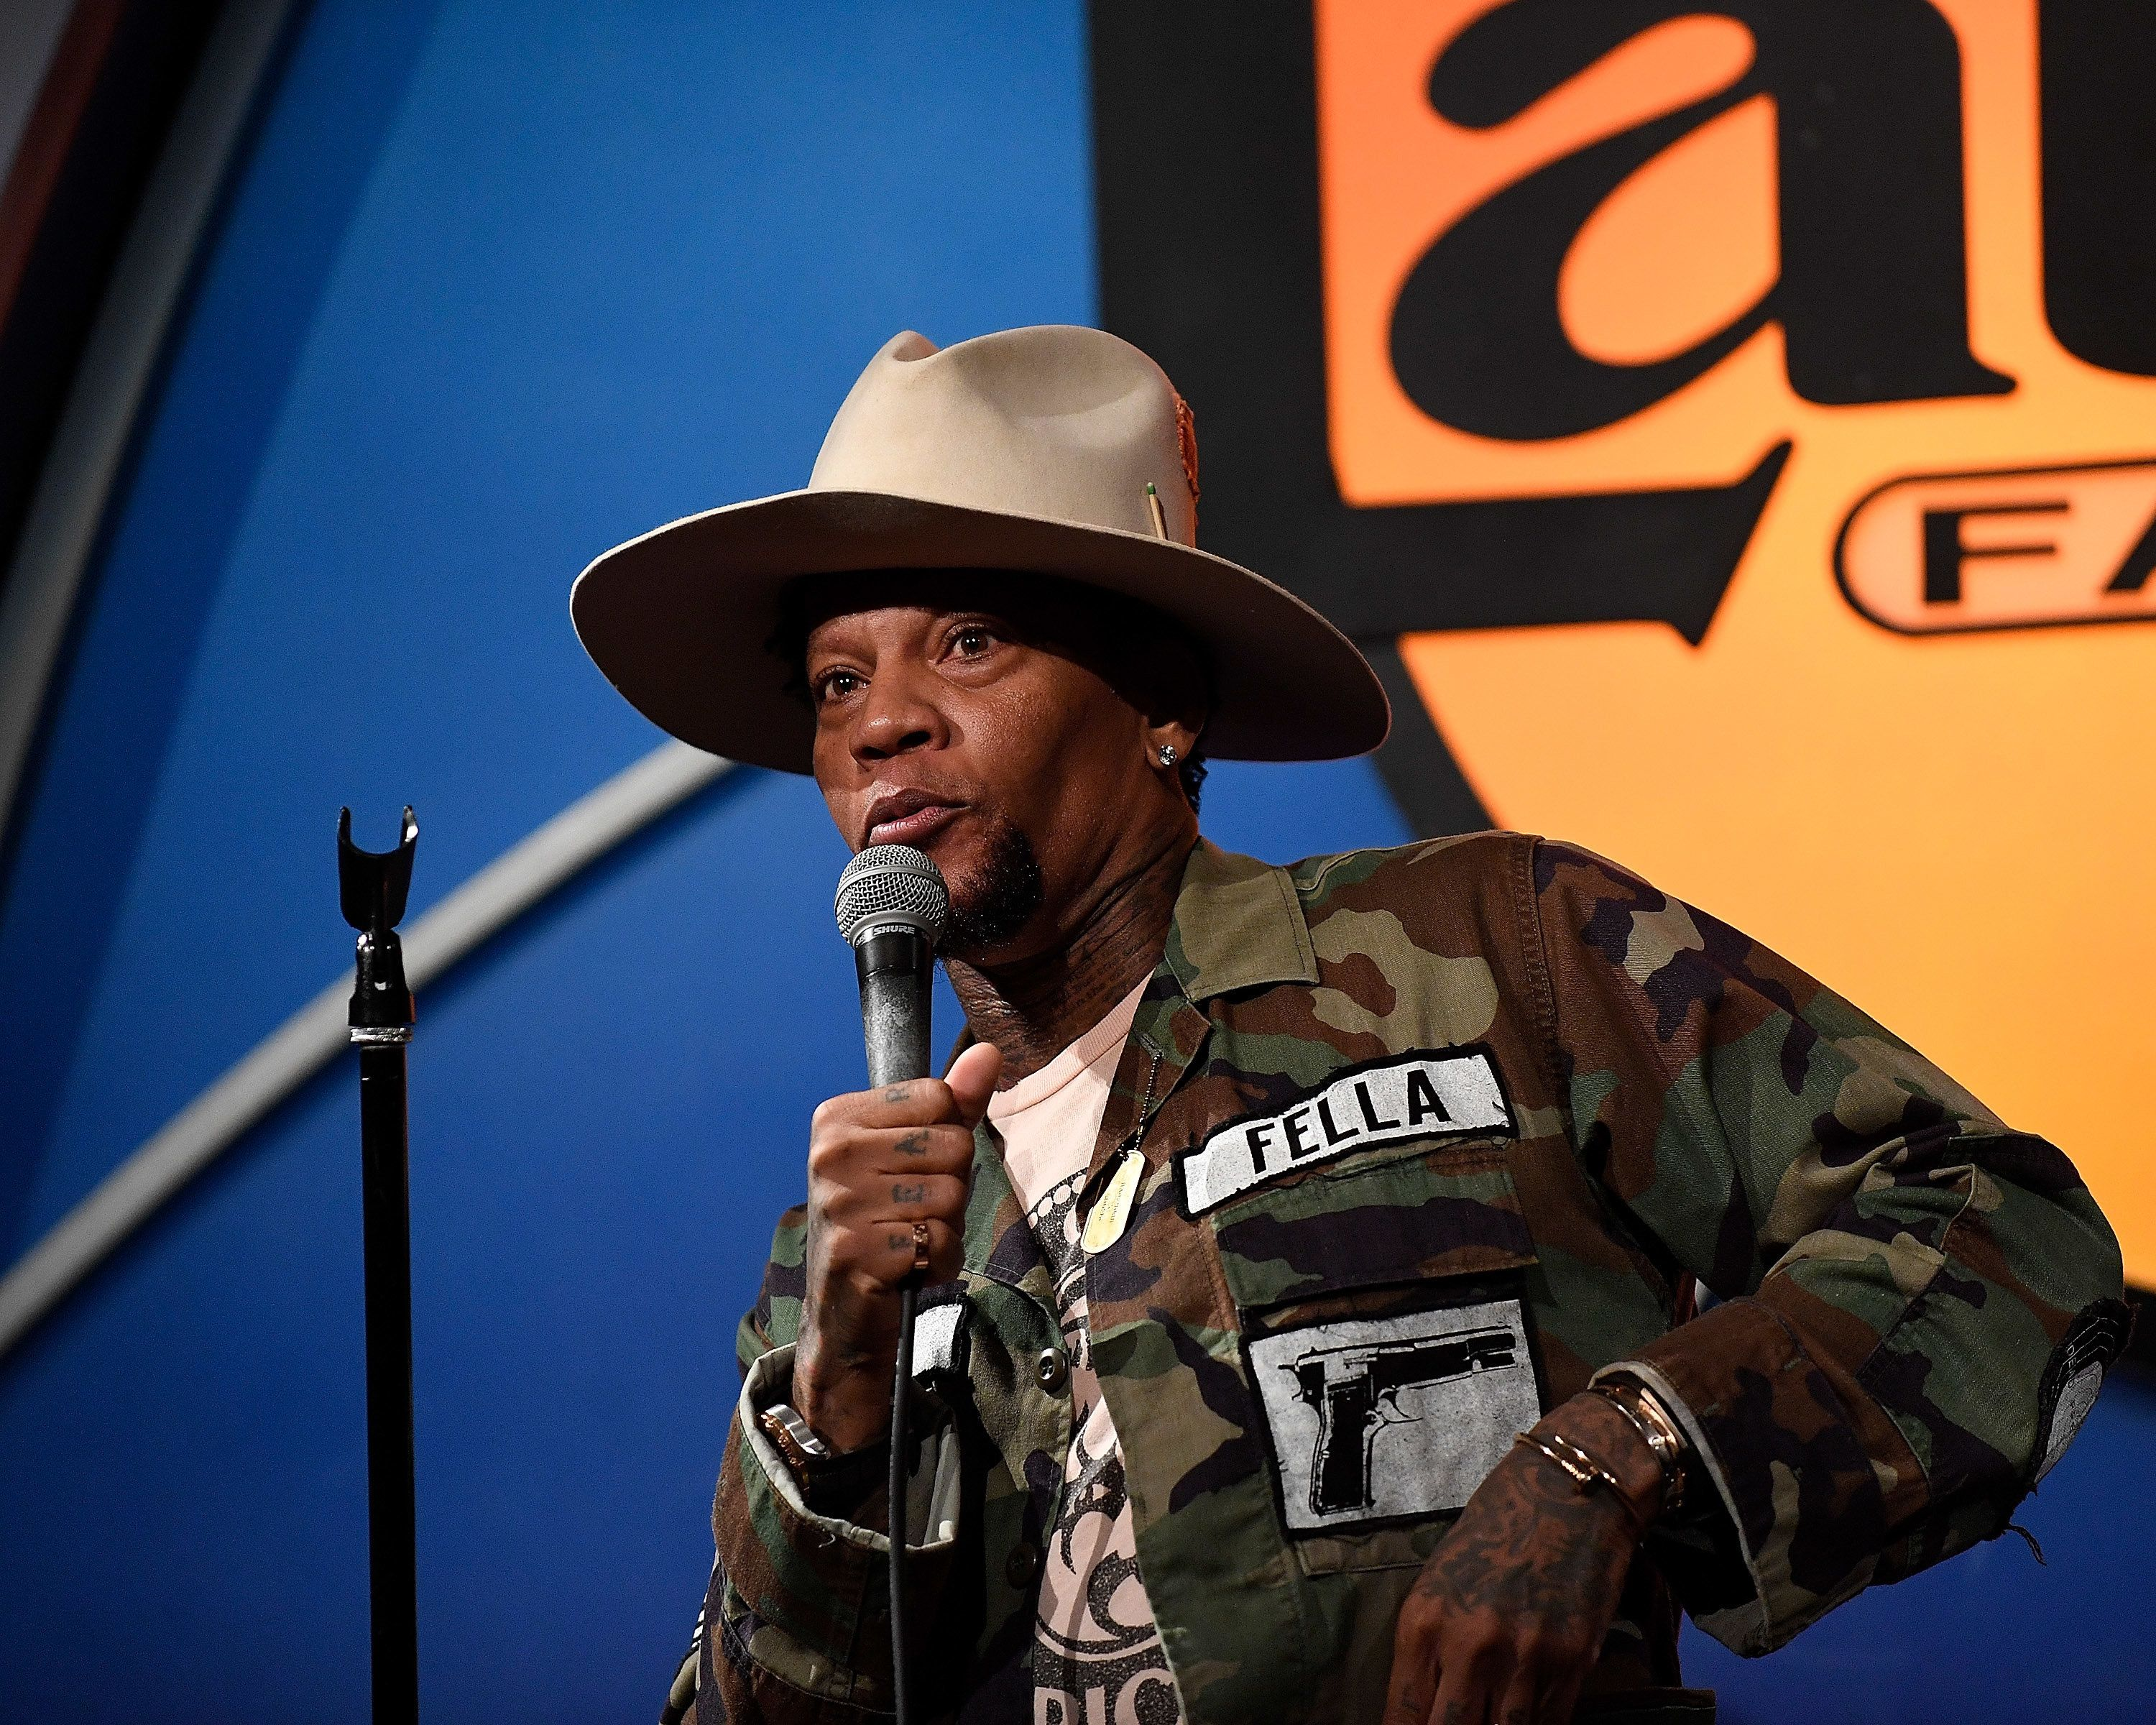 D.L. Hughley performs at the Sarcoma-Oma Foundation Comedy Benefit at The Laugh Factory on June 6 in West Hollywood.